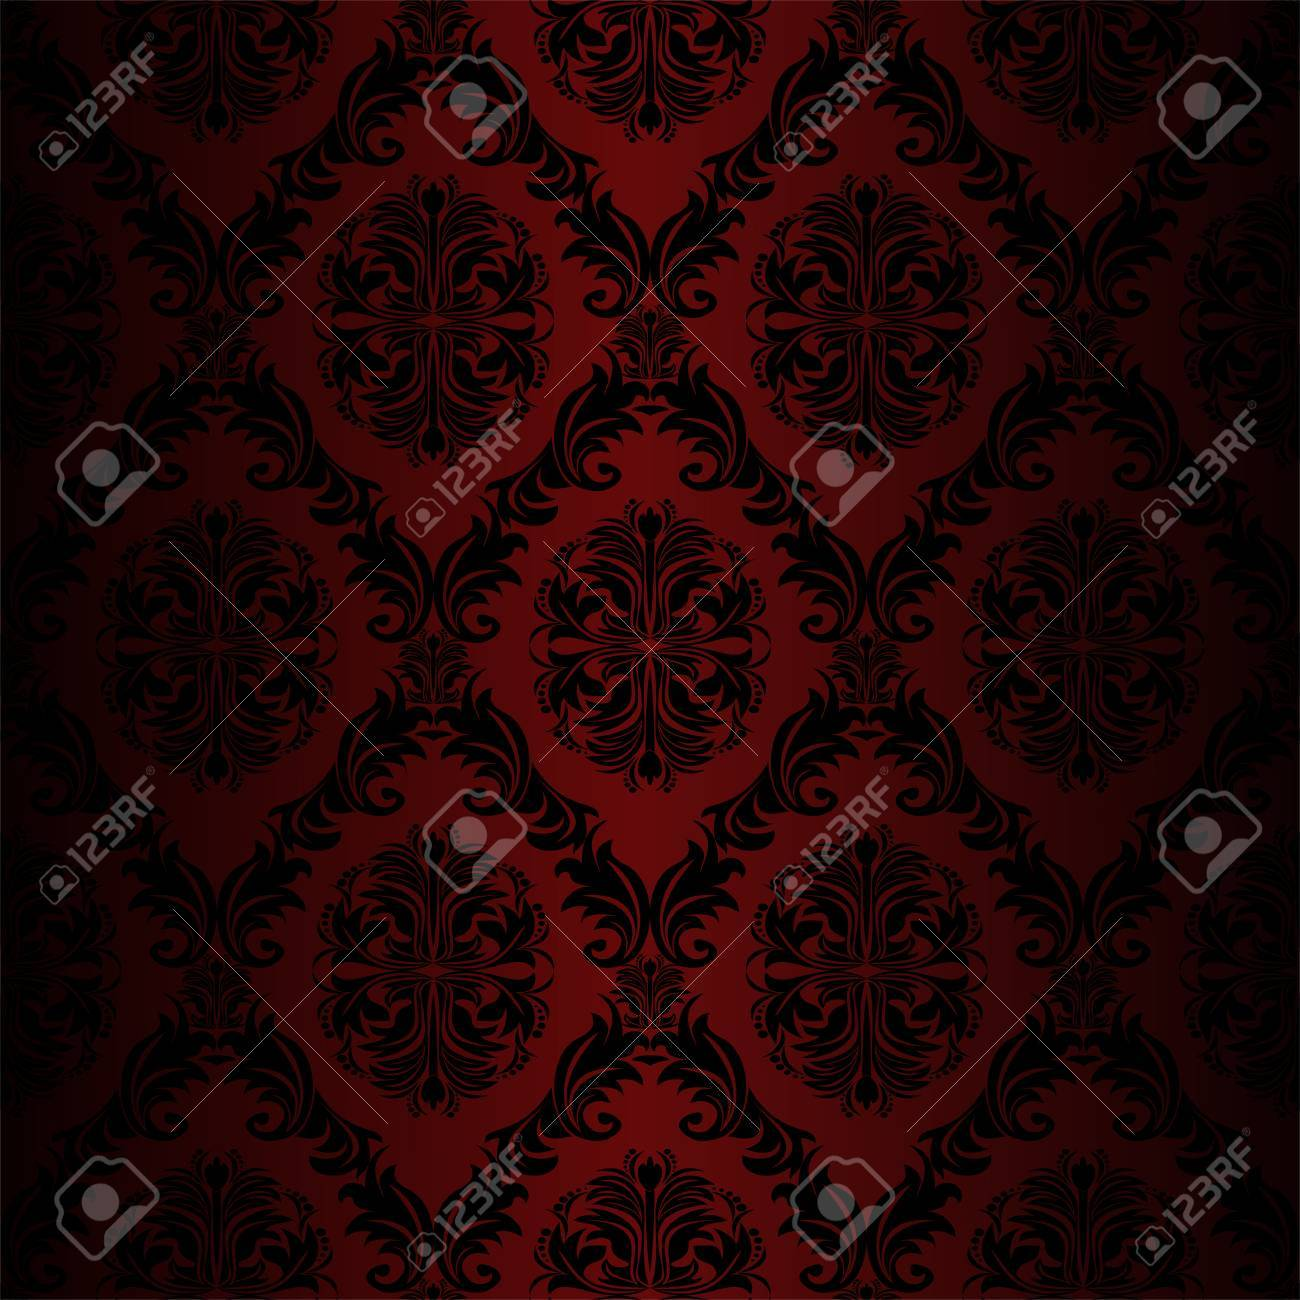 Seamless retro damask Wallpaper red colors - 41201051